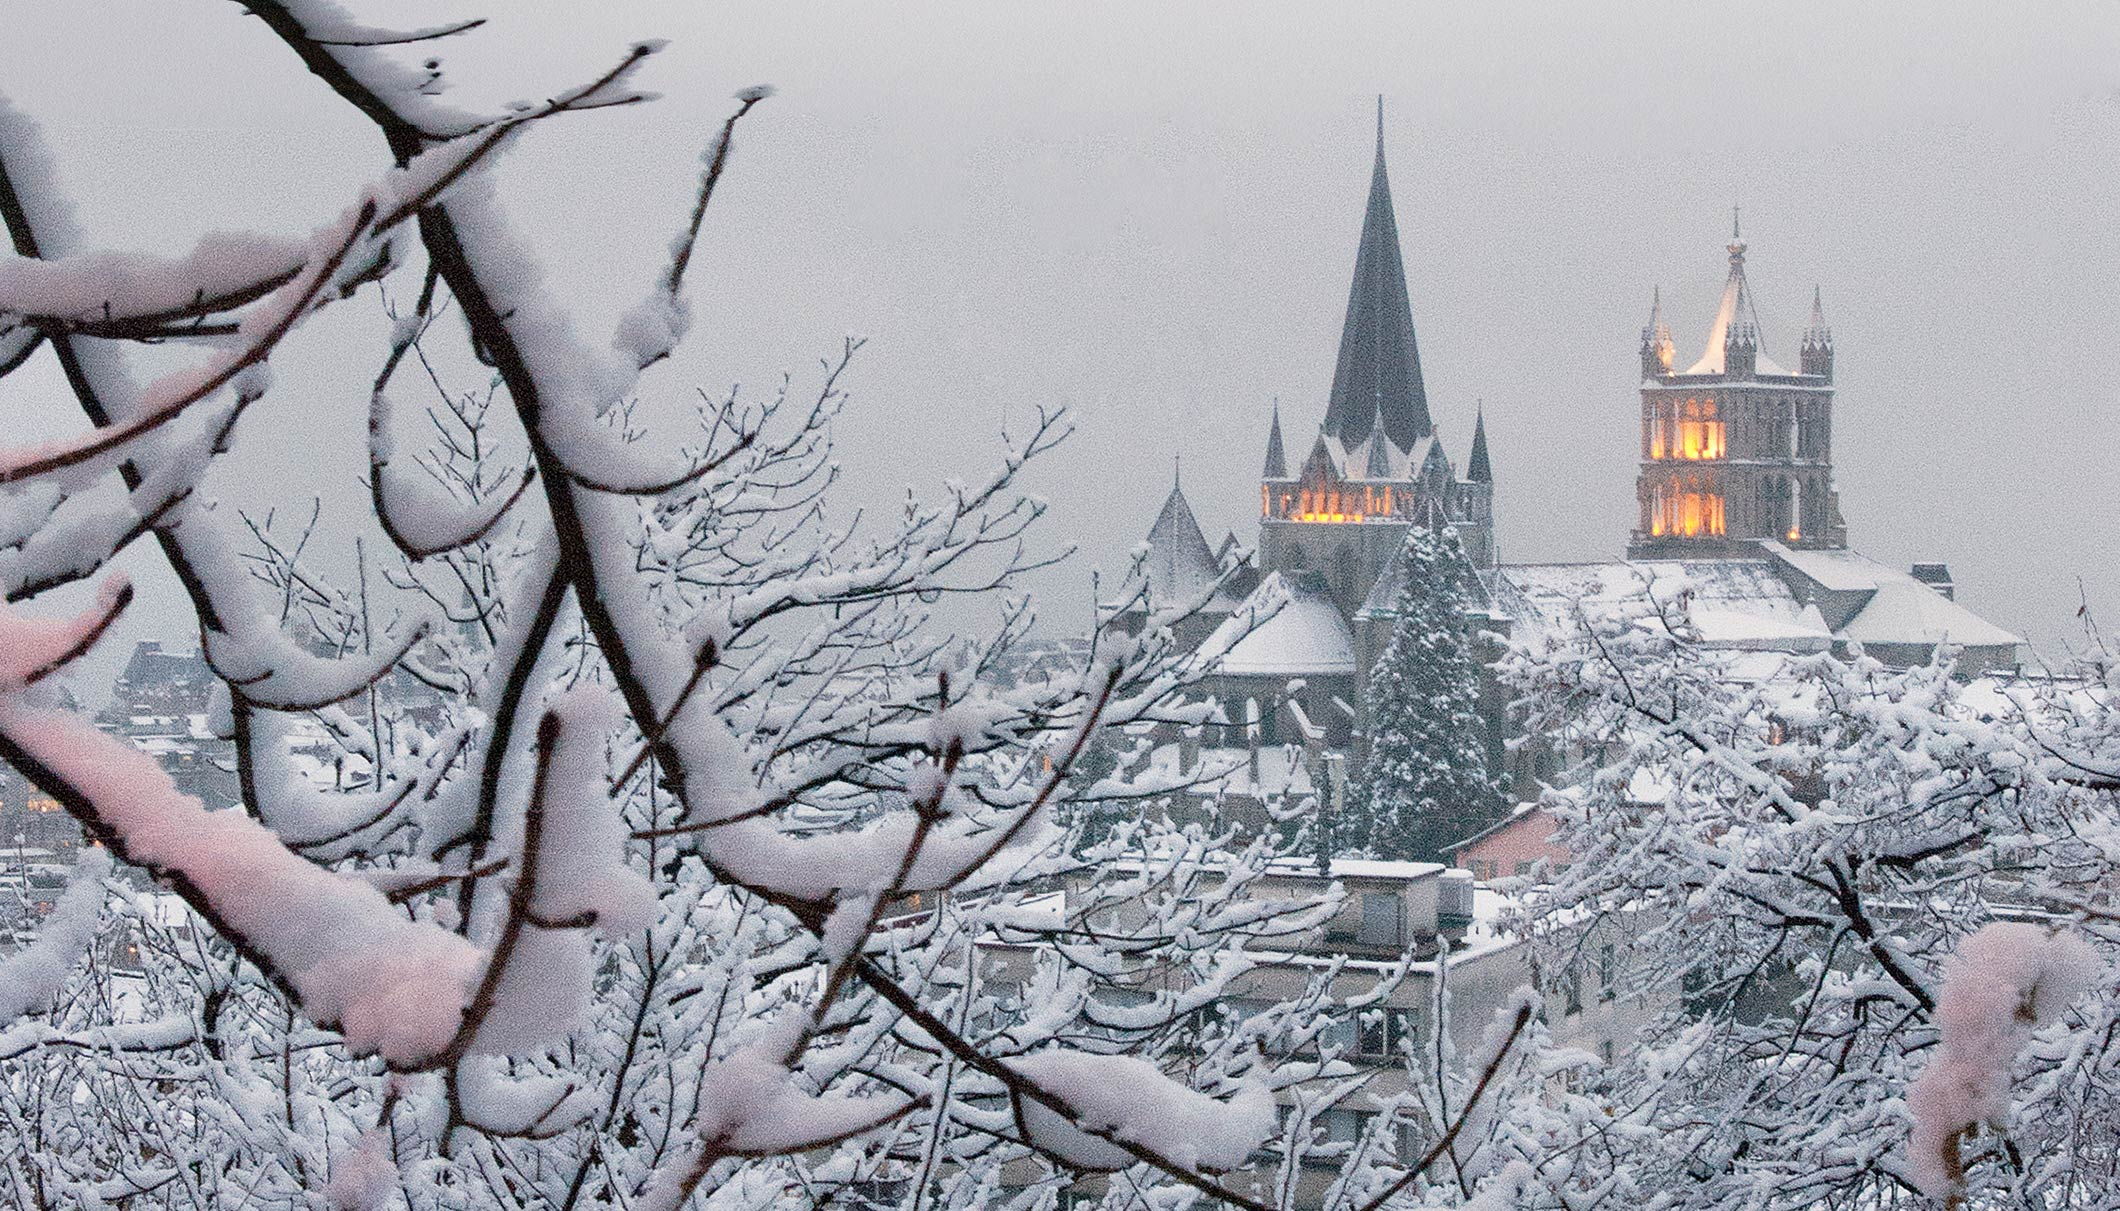 Lausanne 2020 Youth Olympic Games - City view